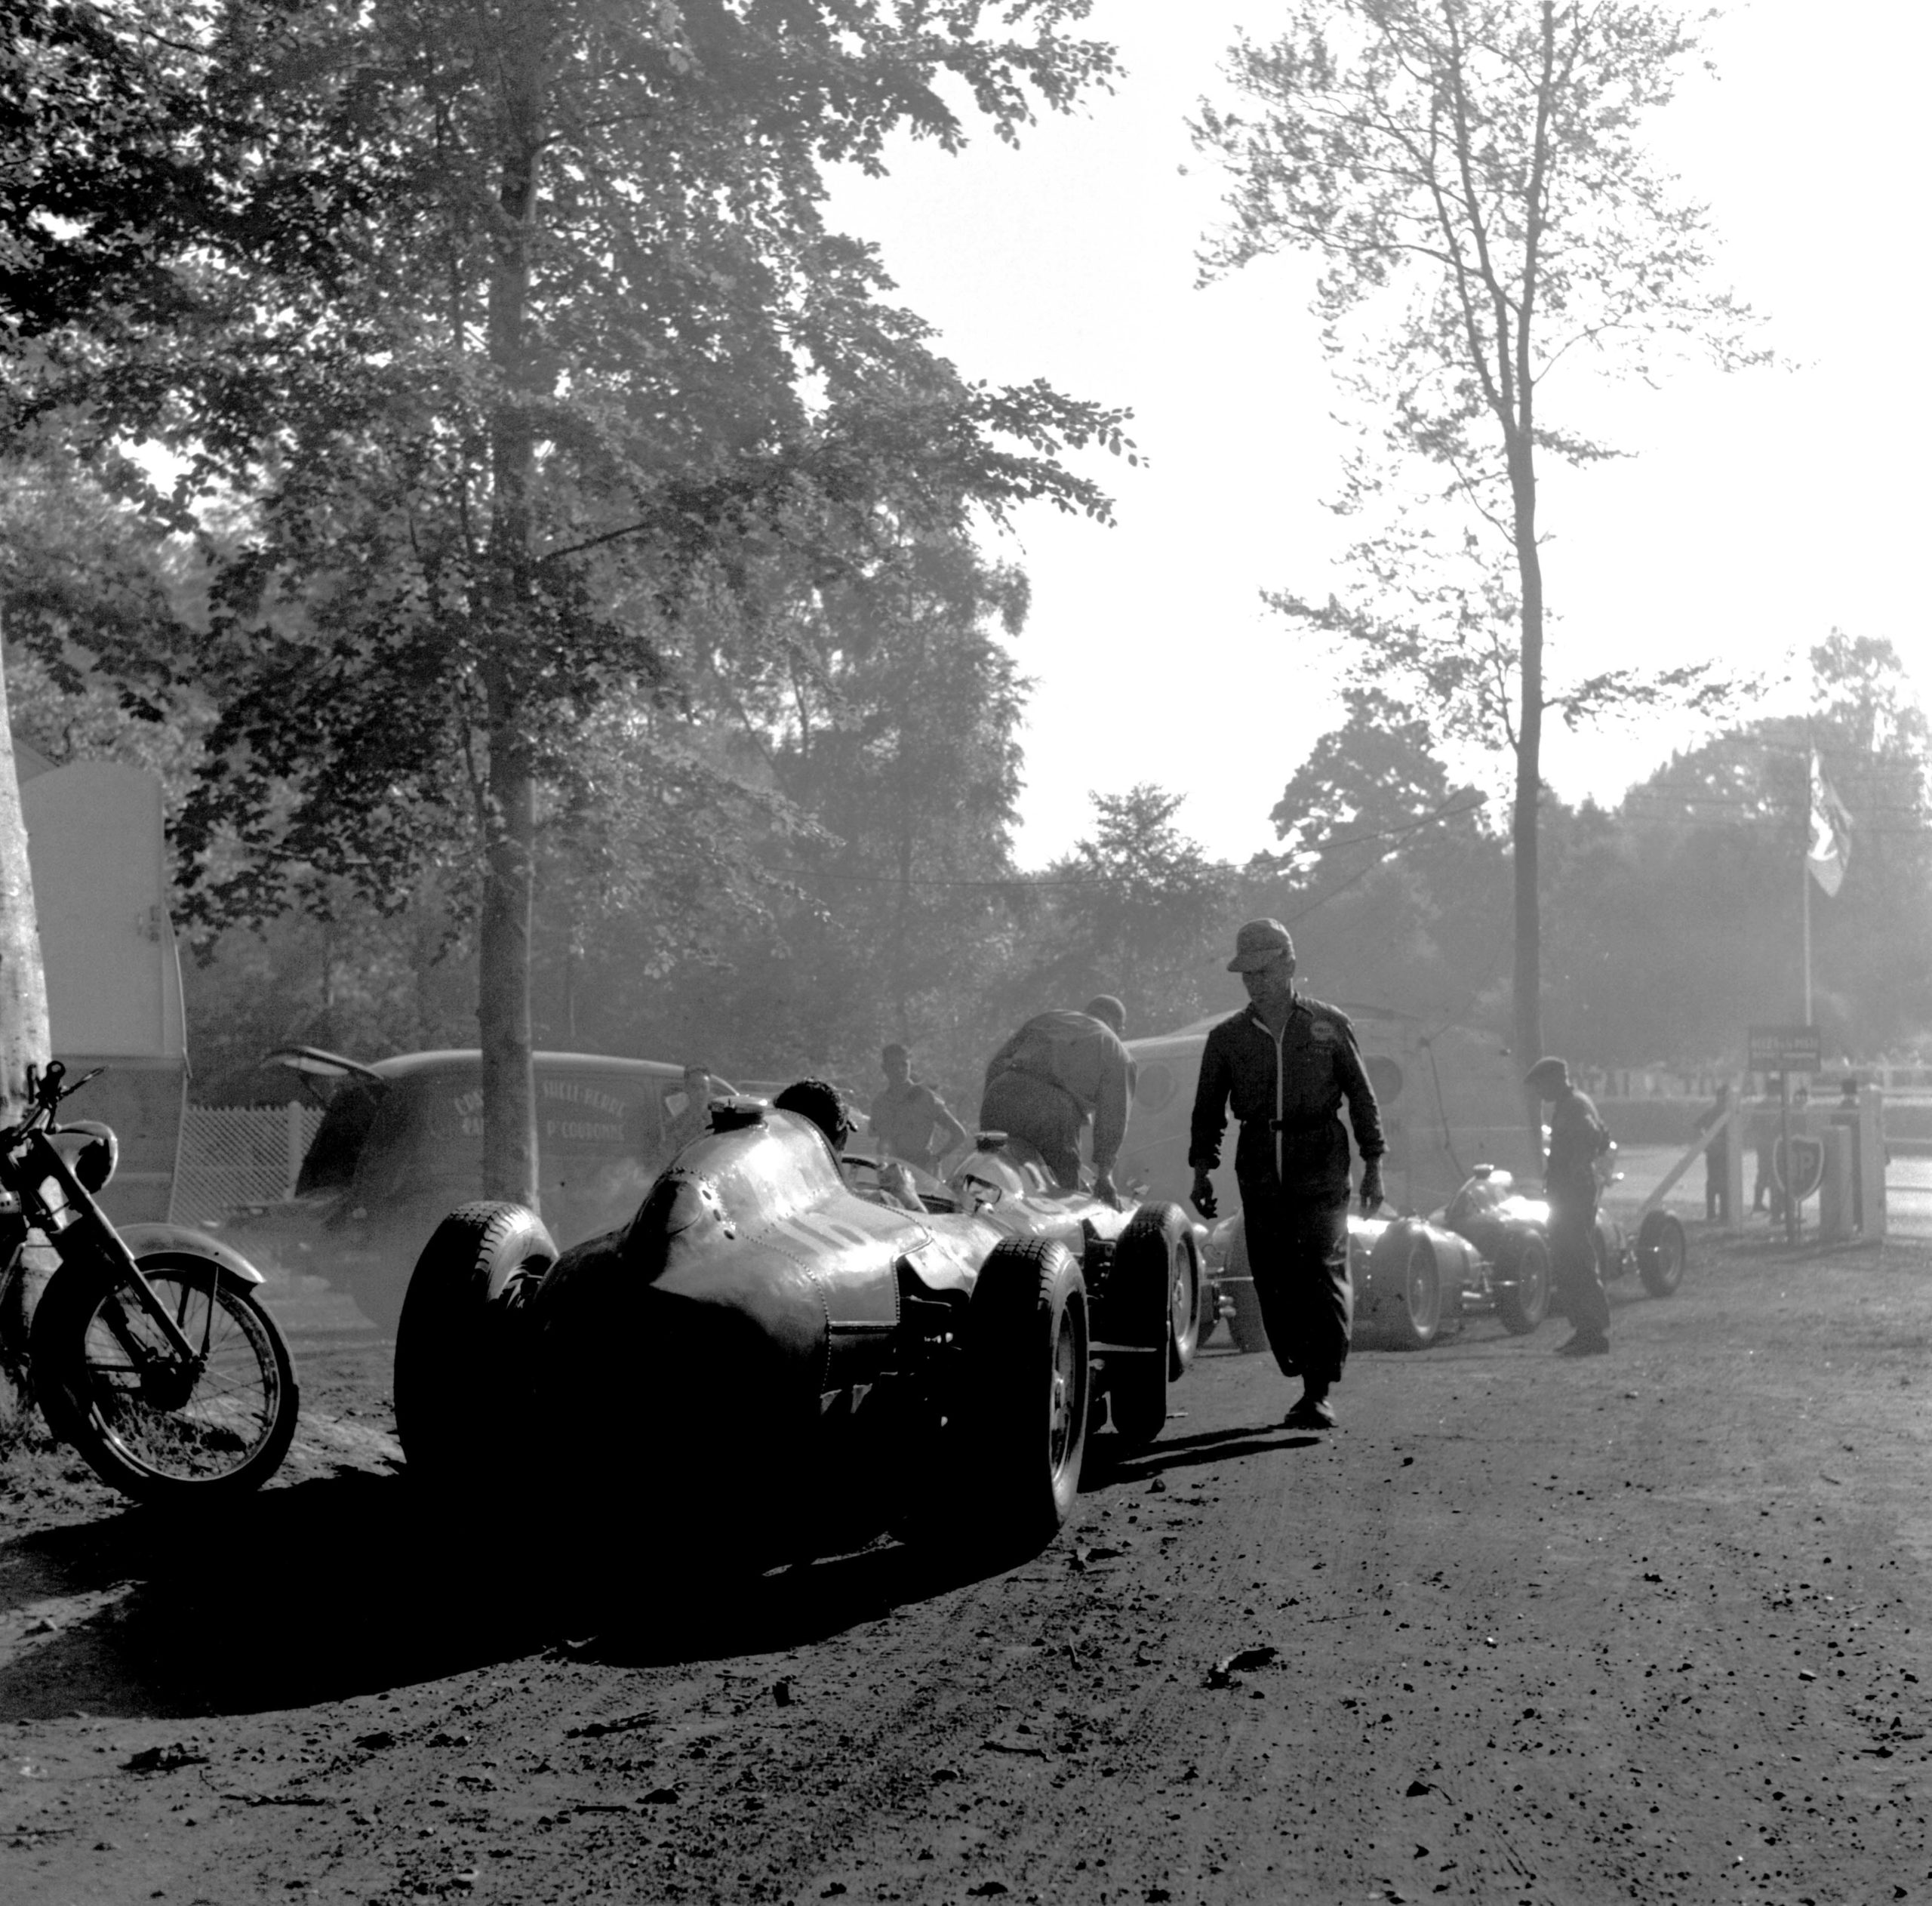 The French Grand Prix; Rouen-les Essarts, July 7, 1957. Early morning in the Rouen paddock which was in a lovely grove of pines � the Ferraris are in line to be fueled before the start. Car n. 16 was to be driven by the FrenchmanMaurice Trintignant, but did not finish. Once again Klemantaski uses the natural composition of the surroundings in early morning to evoke the silence before the thunder of the coming race. In the race itself, Fangiowas totally dominant in his Maserati 250F, presaging his astounding victory at the Nürburgring which would come a month later. Starting from pole position, he finished almost a minute ahead of Musso�s Ferrari. (Photo by Klemantaski Collection/Getty Images)